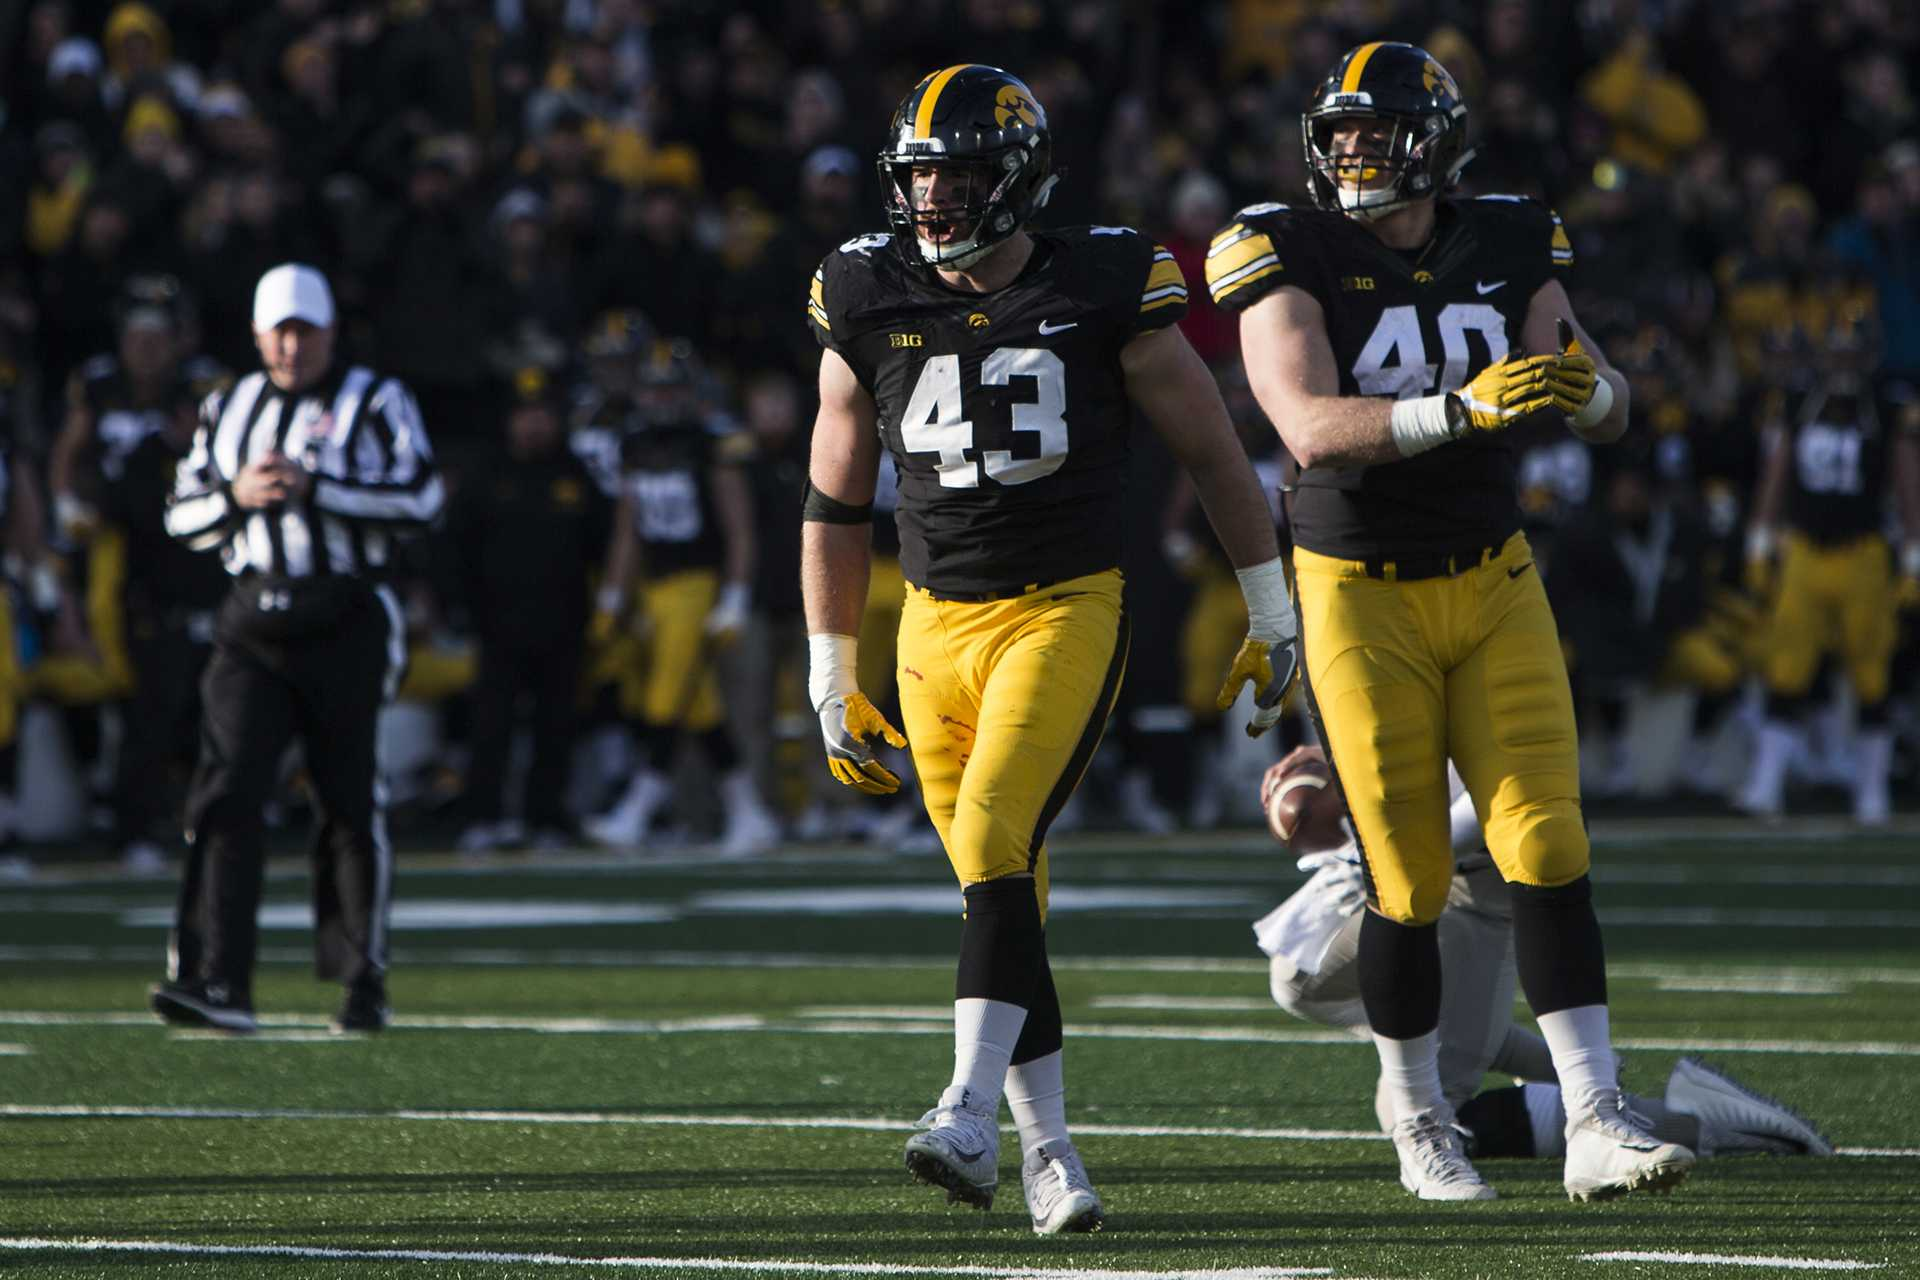 Iowa linebacker Josey Jewell celebrates after getting a sack with teammate Parker Hesse during the Iowa/Purdue football game in Kinnick Stadium on Saturday, Nov. 18, 2017. The Boilermakers defeated the Hawkeyes, 24-15. (Joseph Cress/The Daily Iowan)